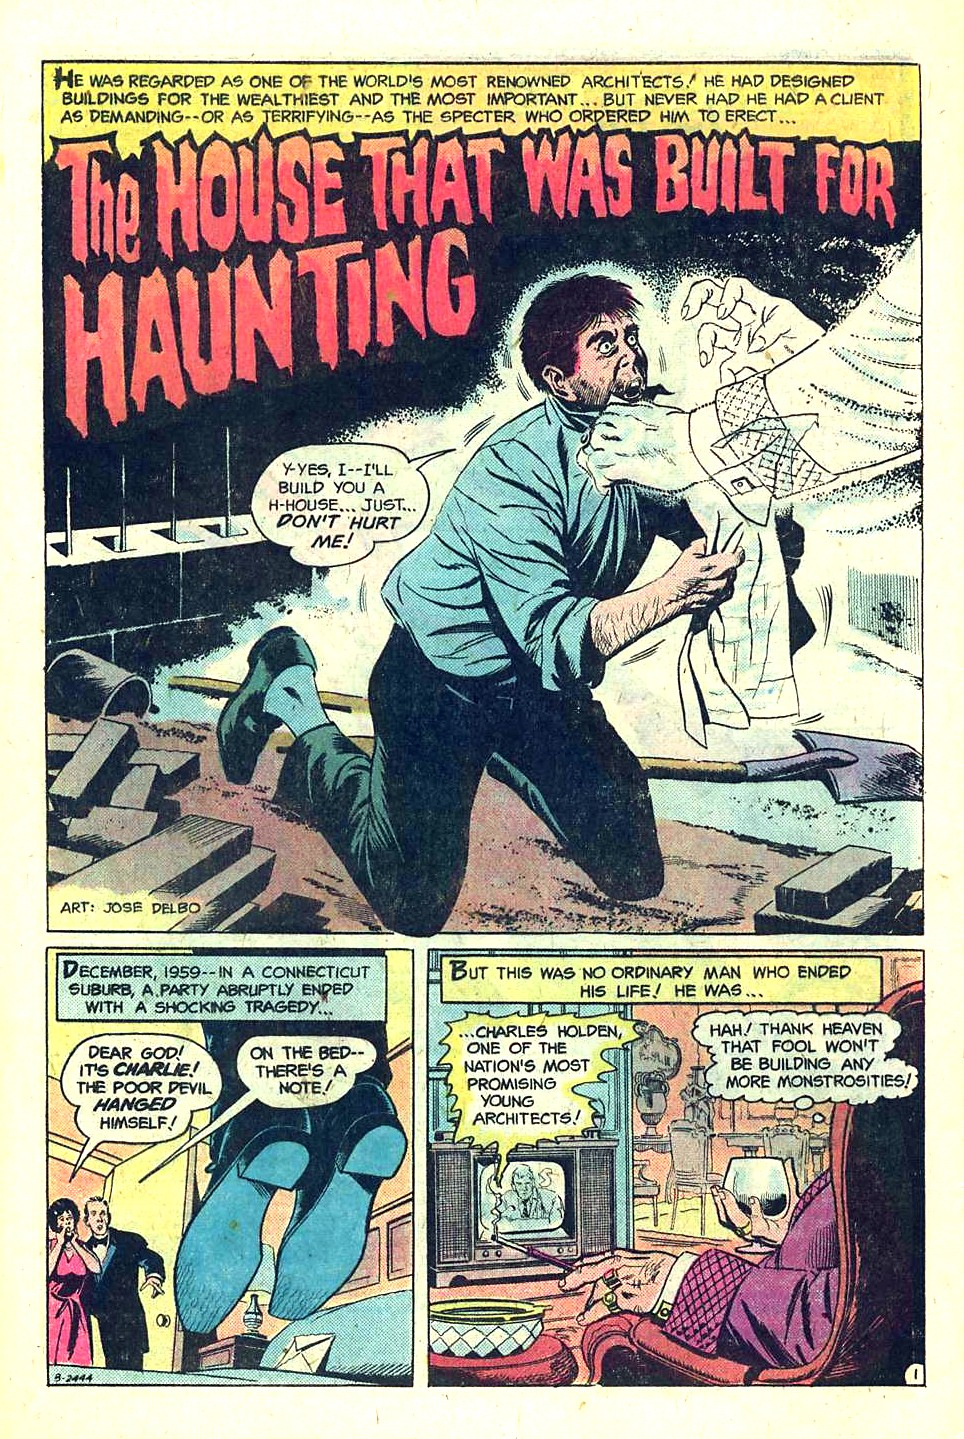 Ghosts (1971) #55 pg1, art by Jose Delbo.